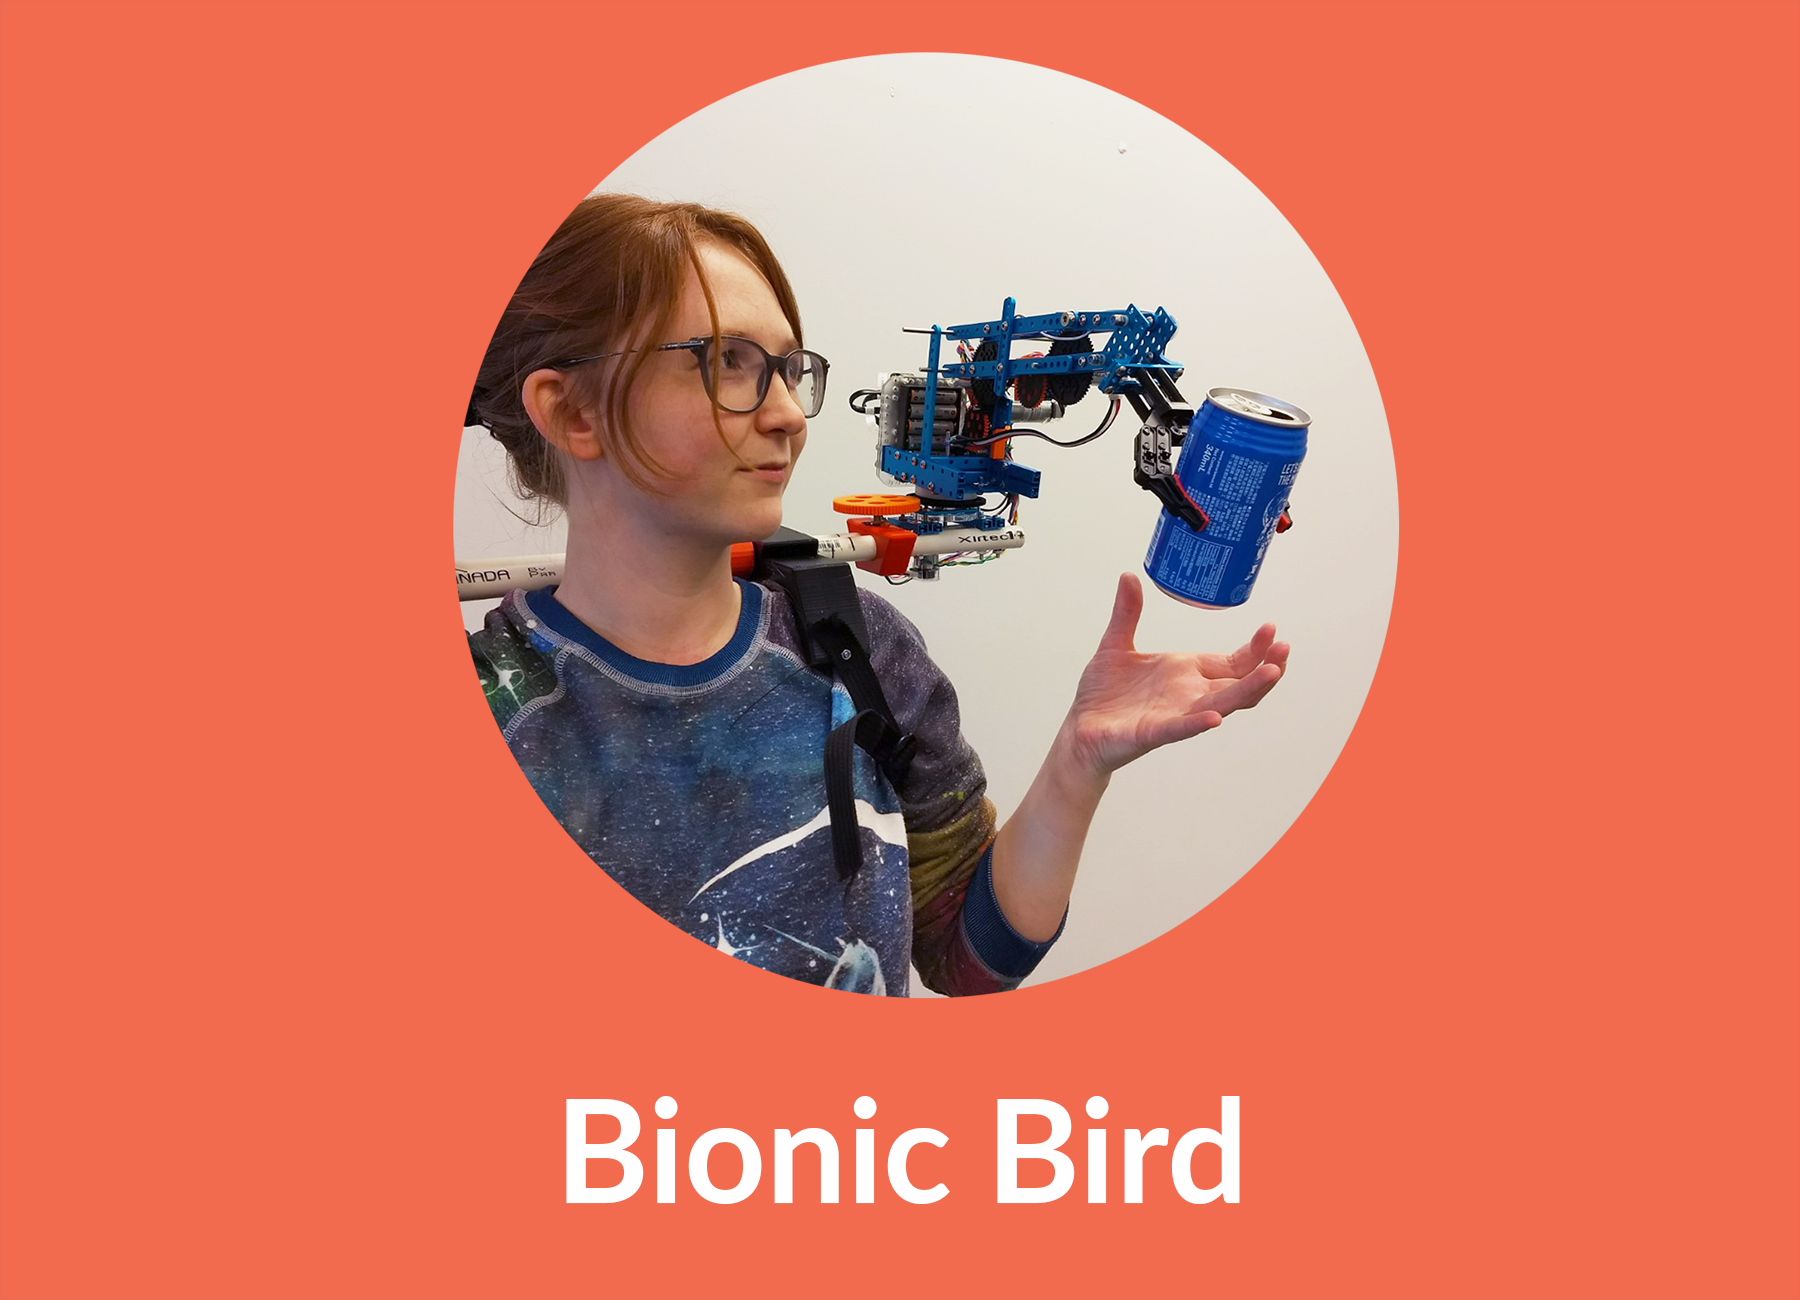 Robot Bird on Shoulder